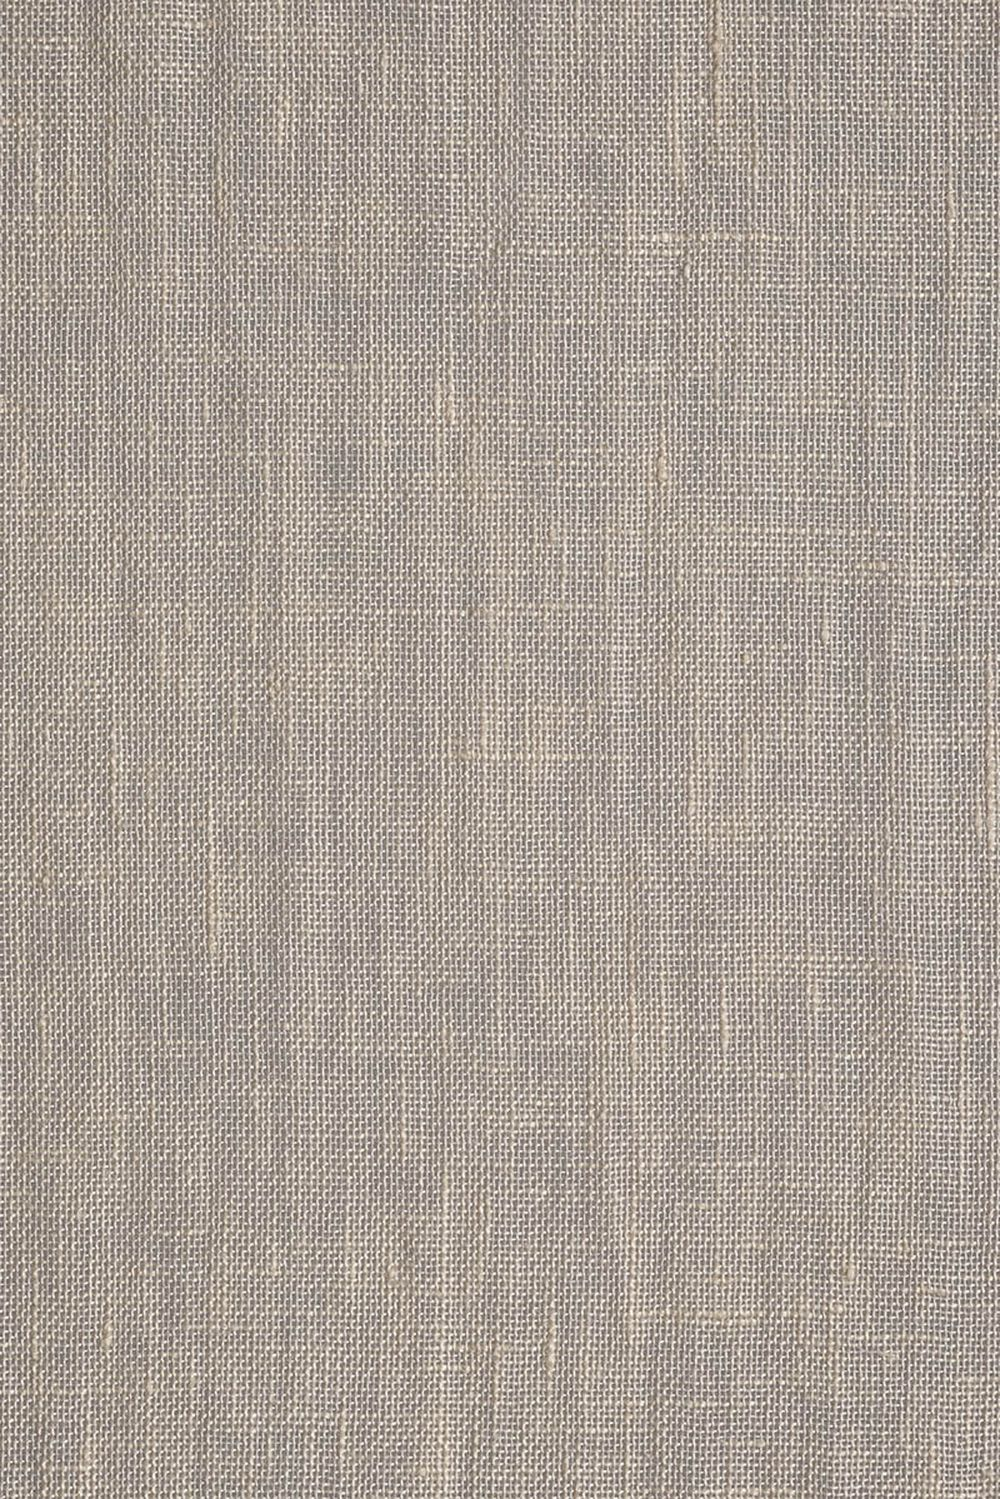 Photo of the fabric Kanso Stonewash Blush swatch by Mokum. Use for Curtains. Style of Plain